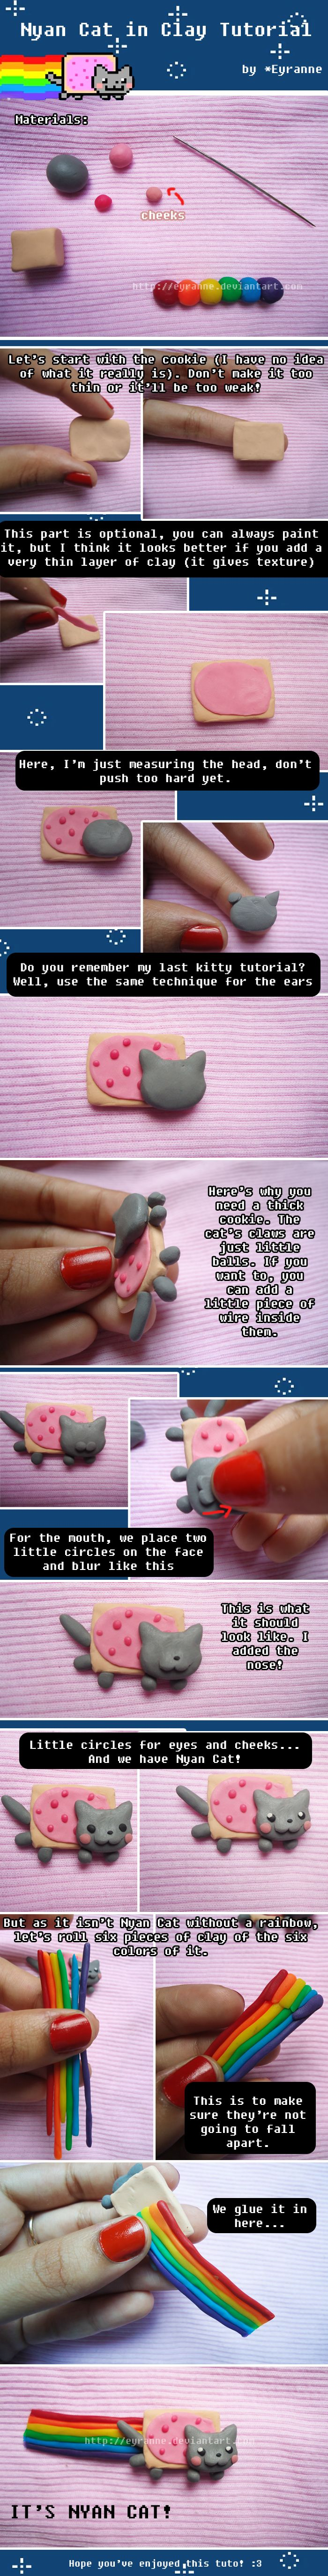 Tutorial : How to make a Nyan Cat polymer clay / Tutoriel : Réaliser un Nyan Cat en pâte polymère Source : http://eyranne.deviantart.com/art/Nyan-Cat-in-Clay-Tutotial-216595281